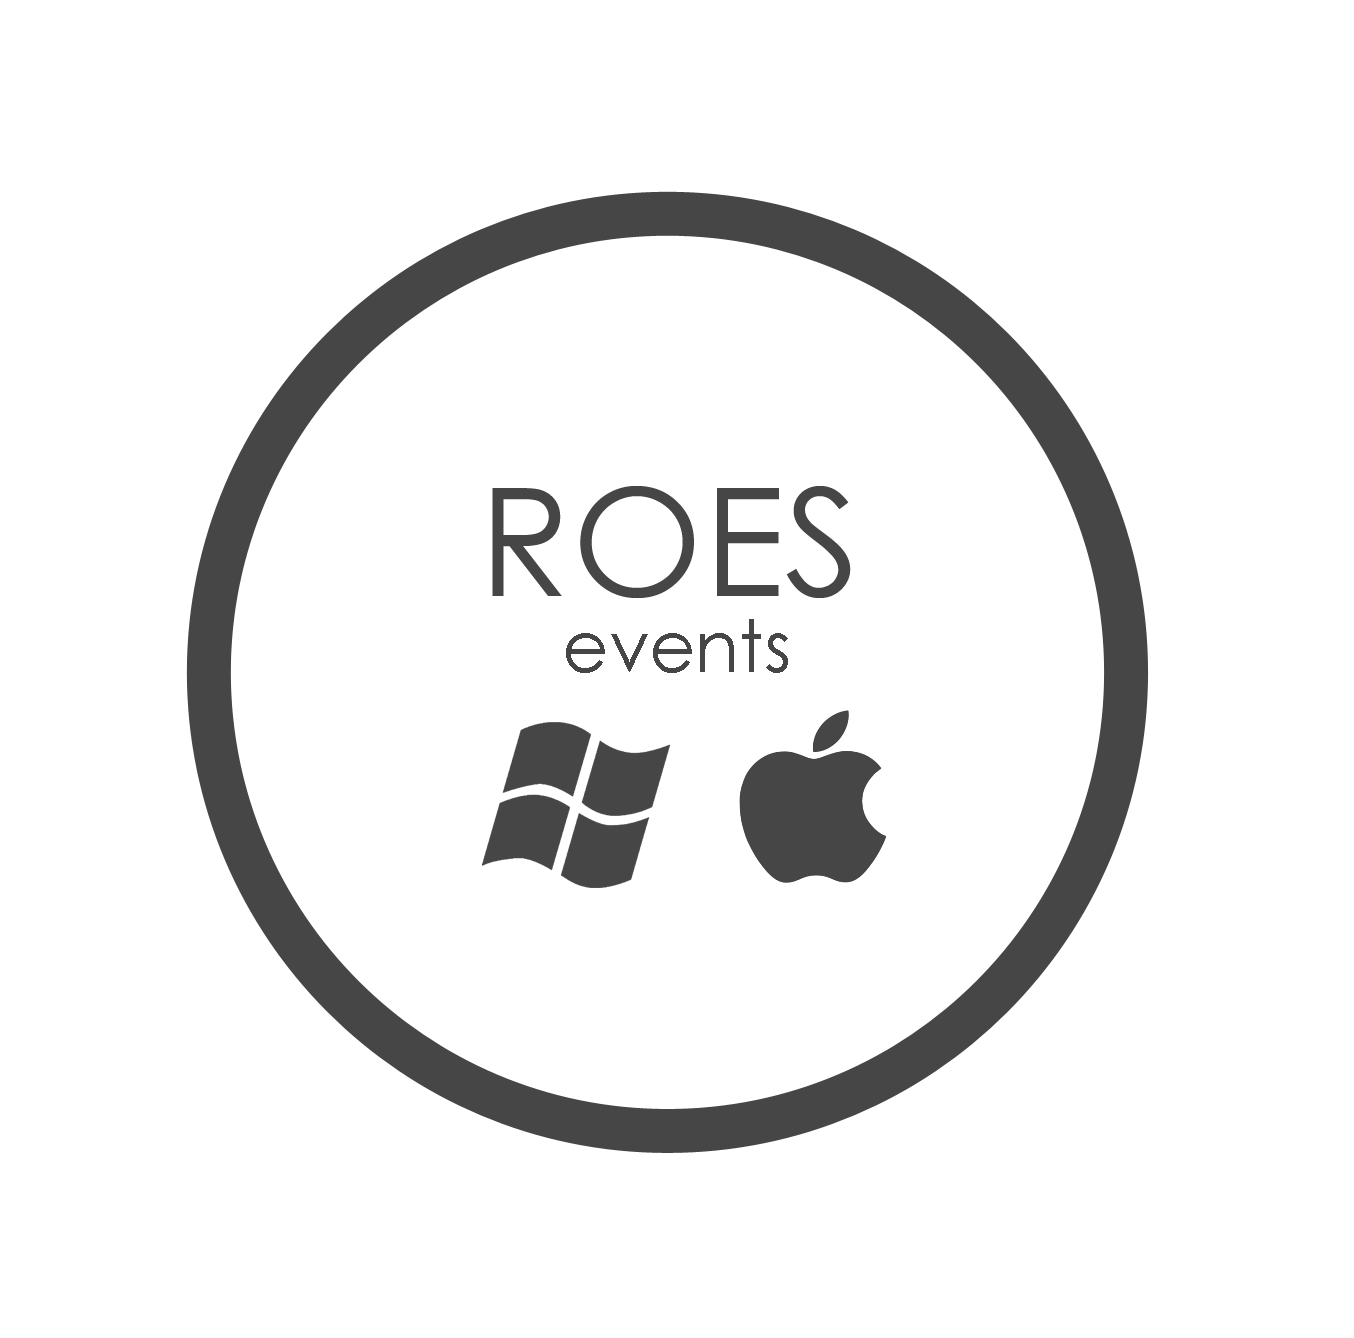 ROES EVENTS